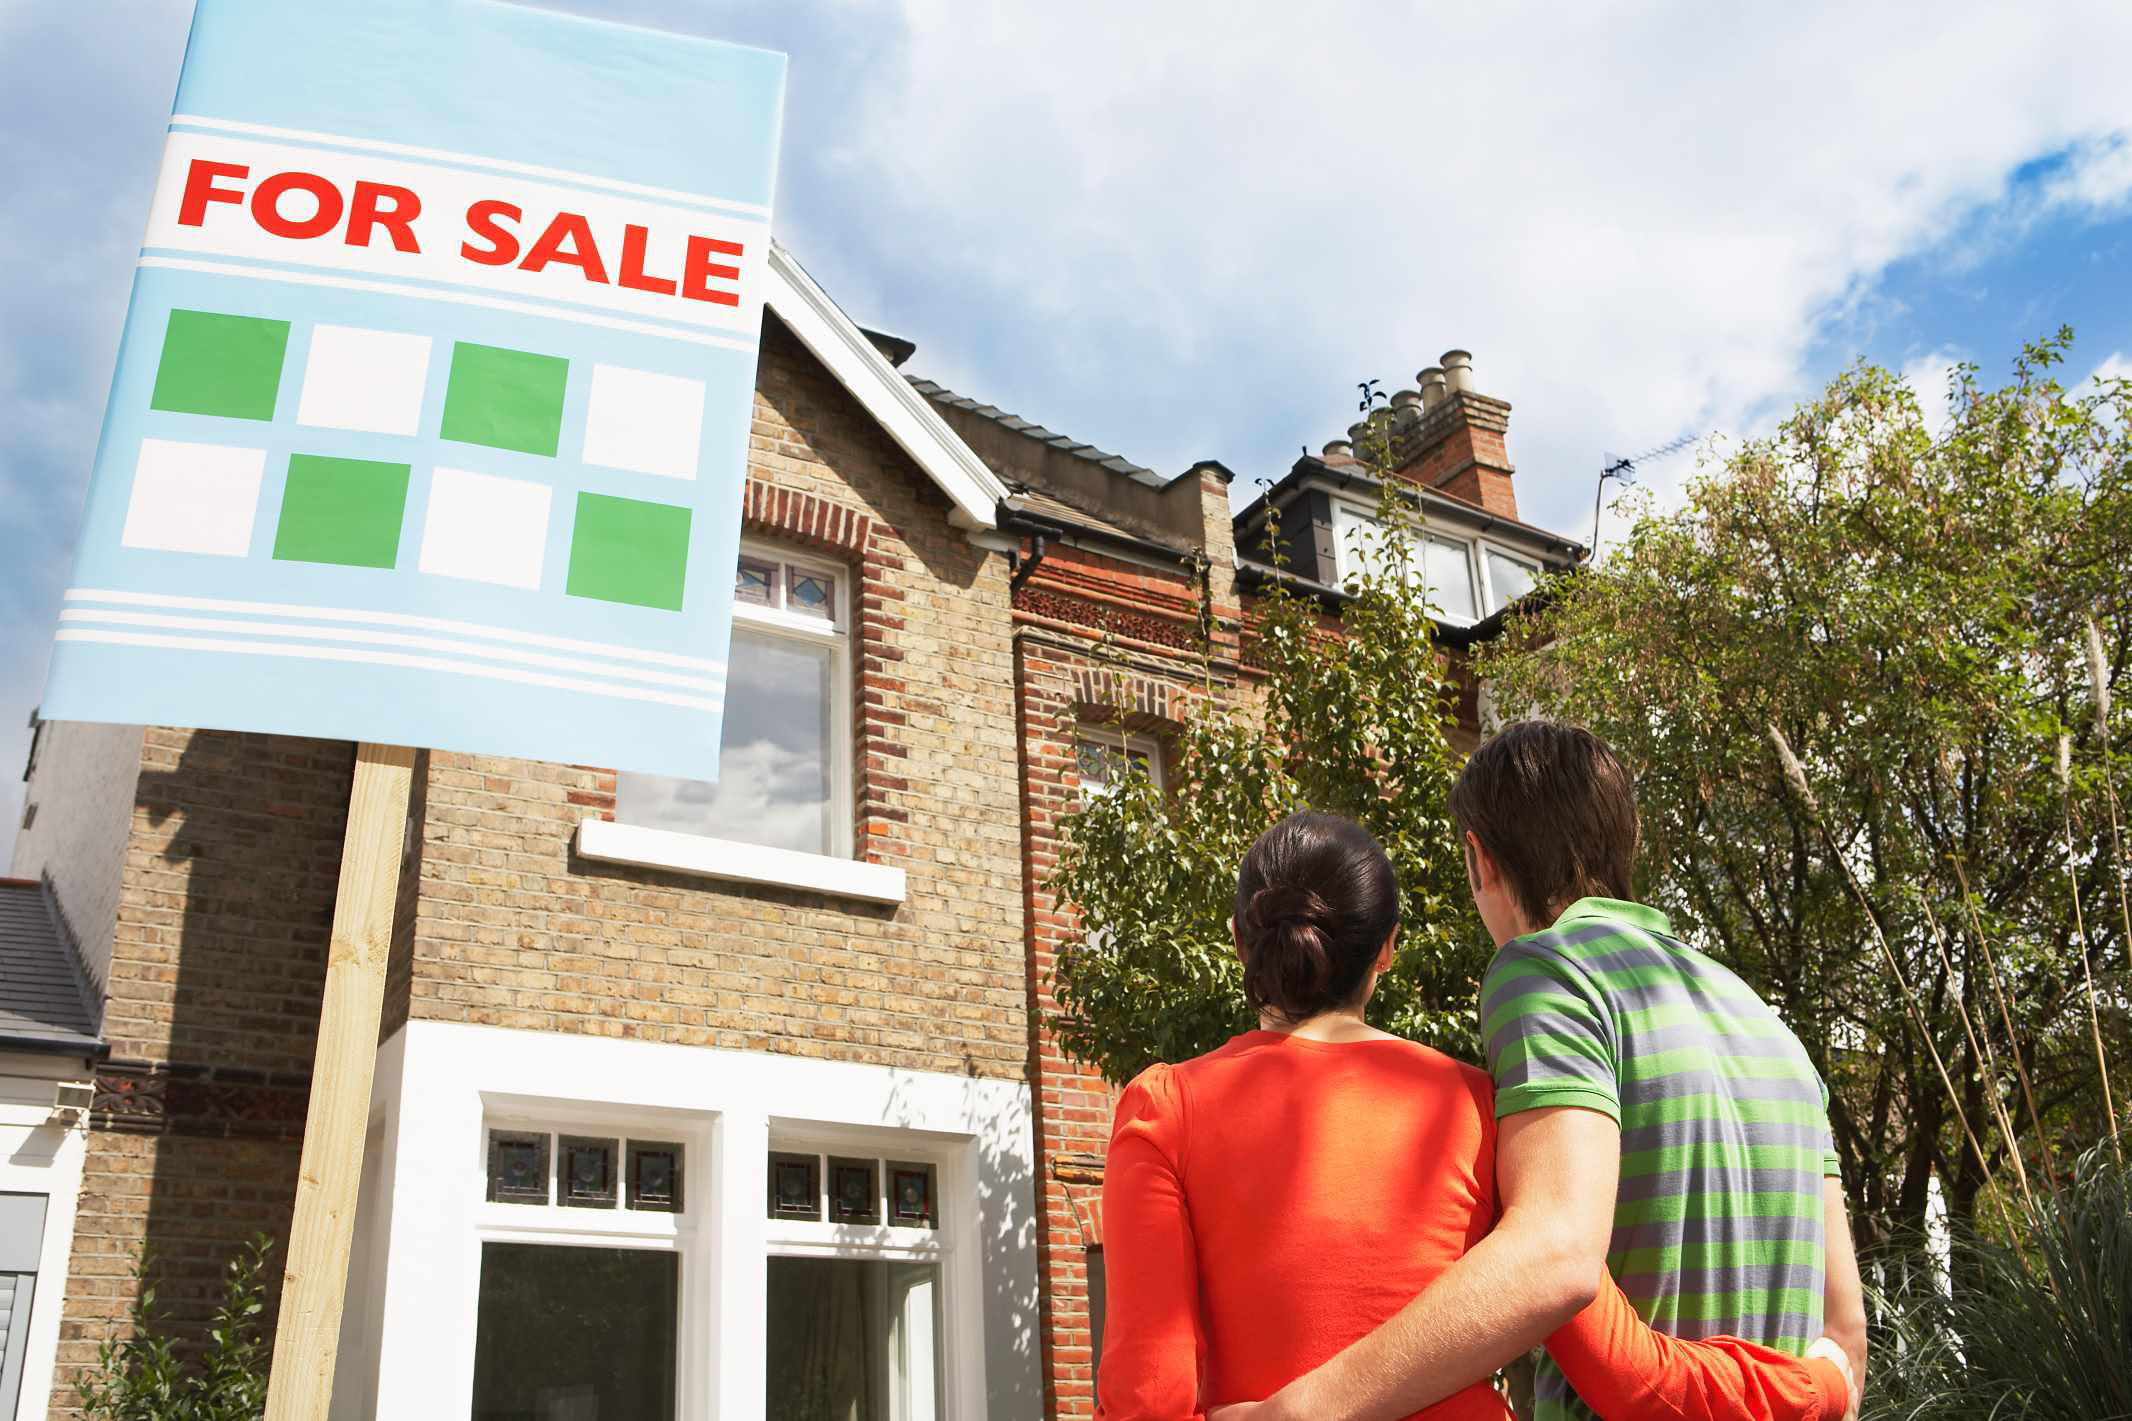 Renting vs. Selling - Which One is Better